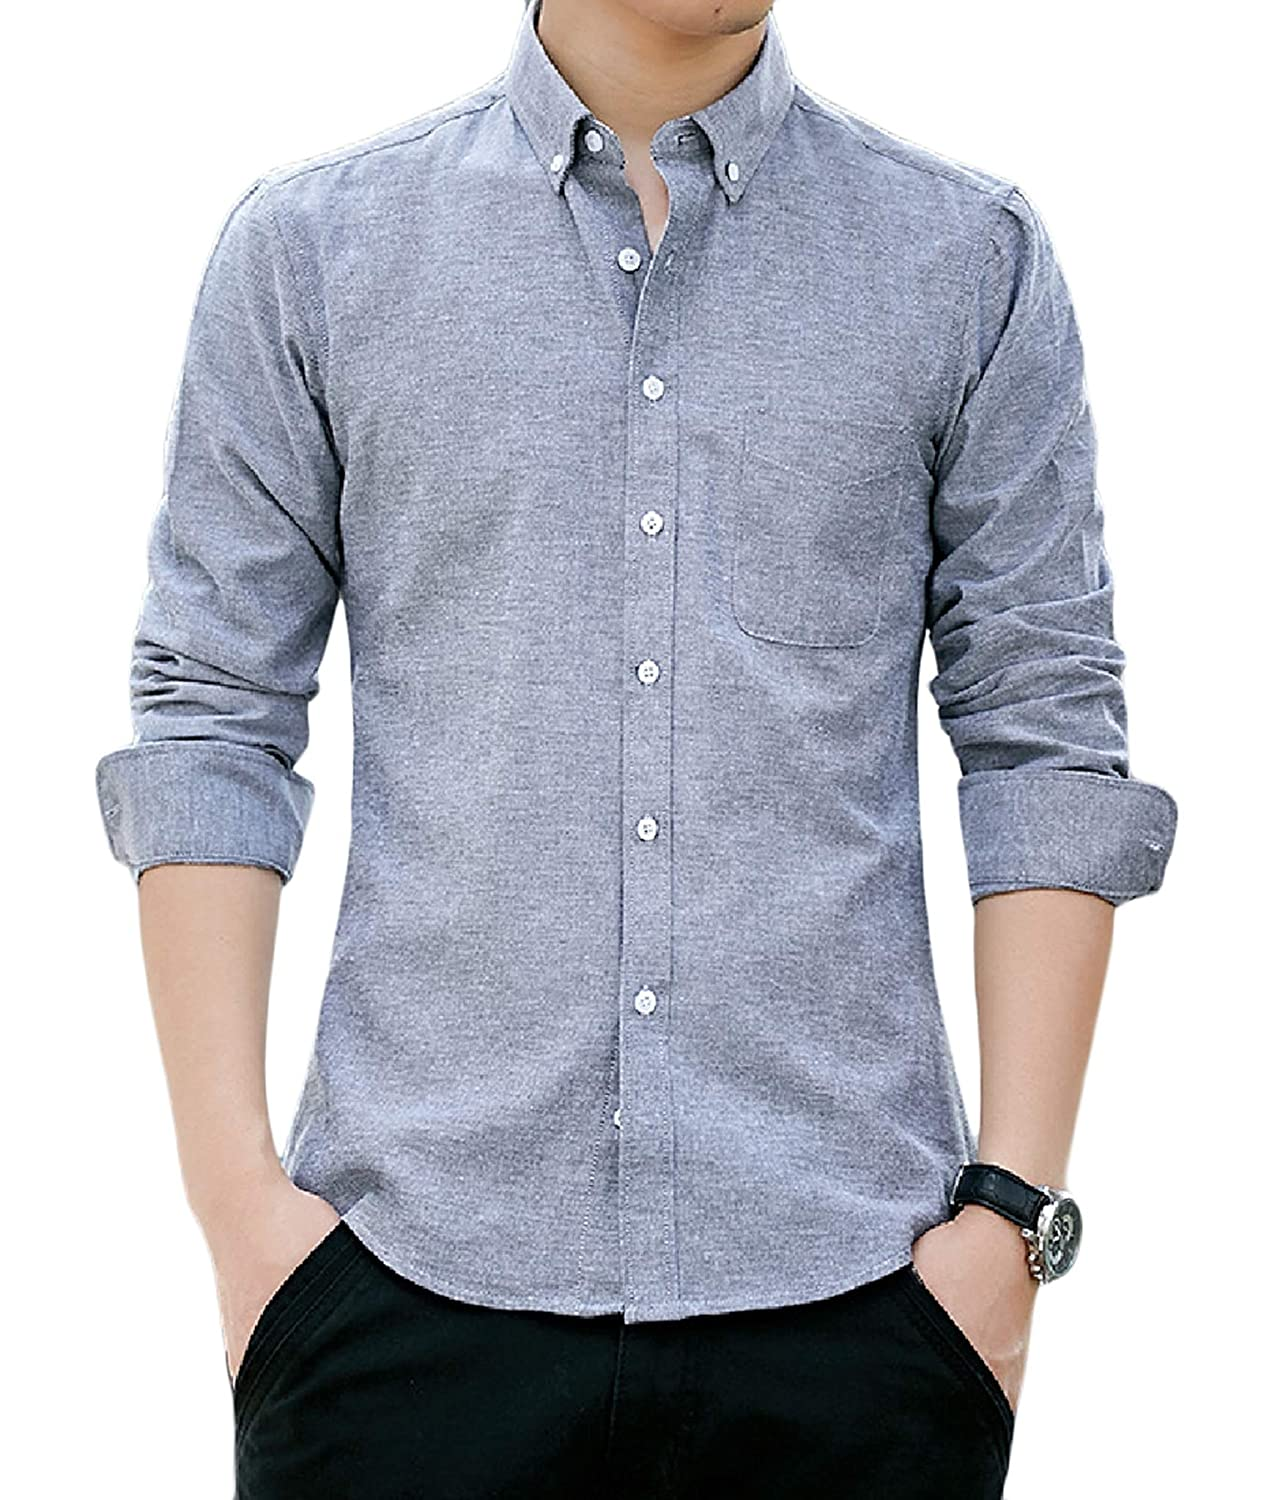 Zimaes-Men Relaxed-Fit Long Sleeves Casual Slim Fit Solid T-Shirt